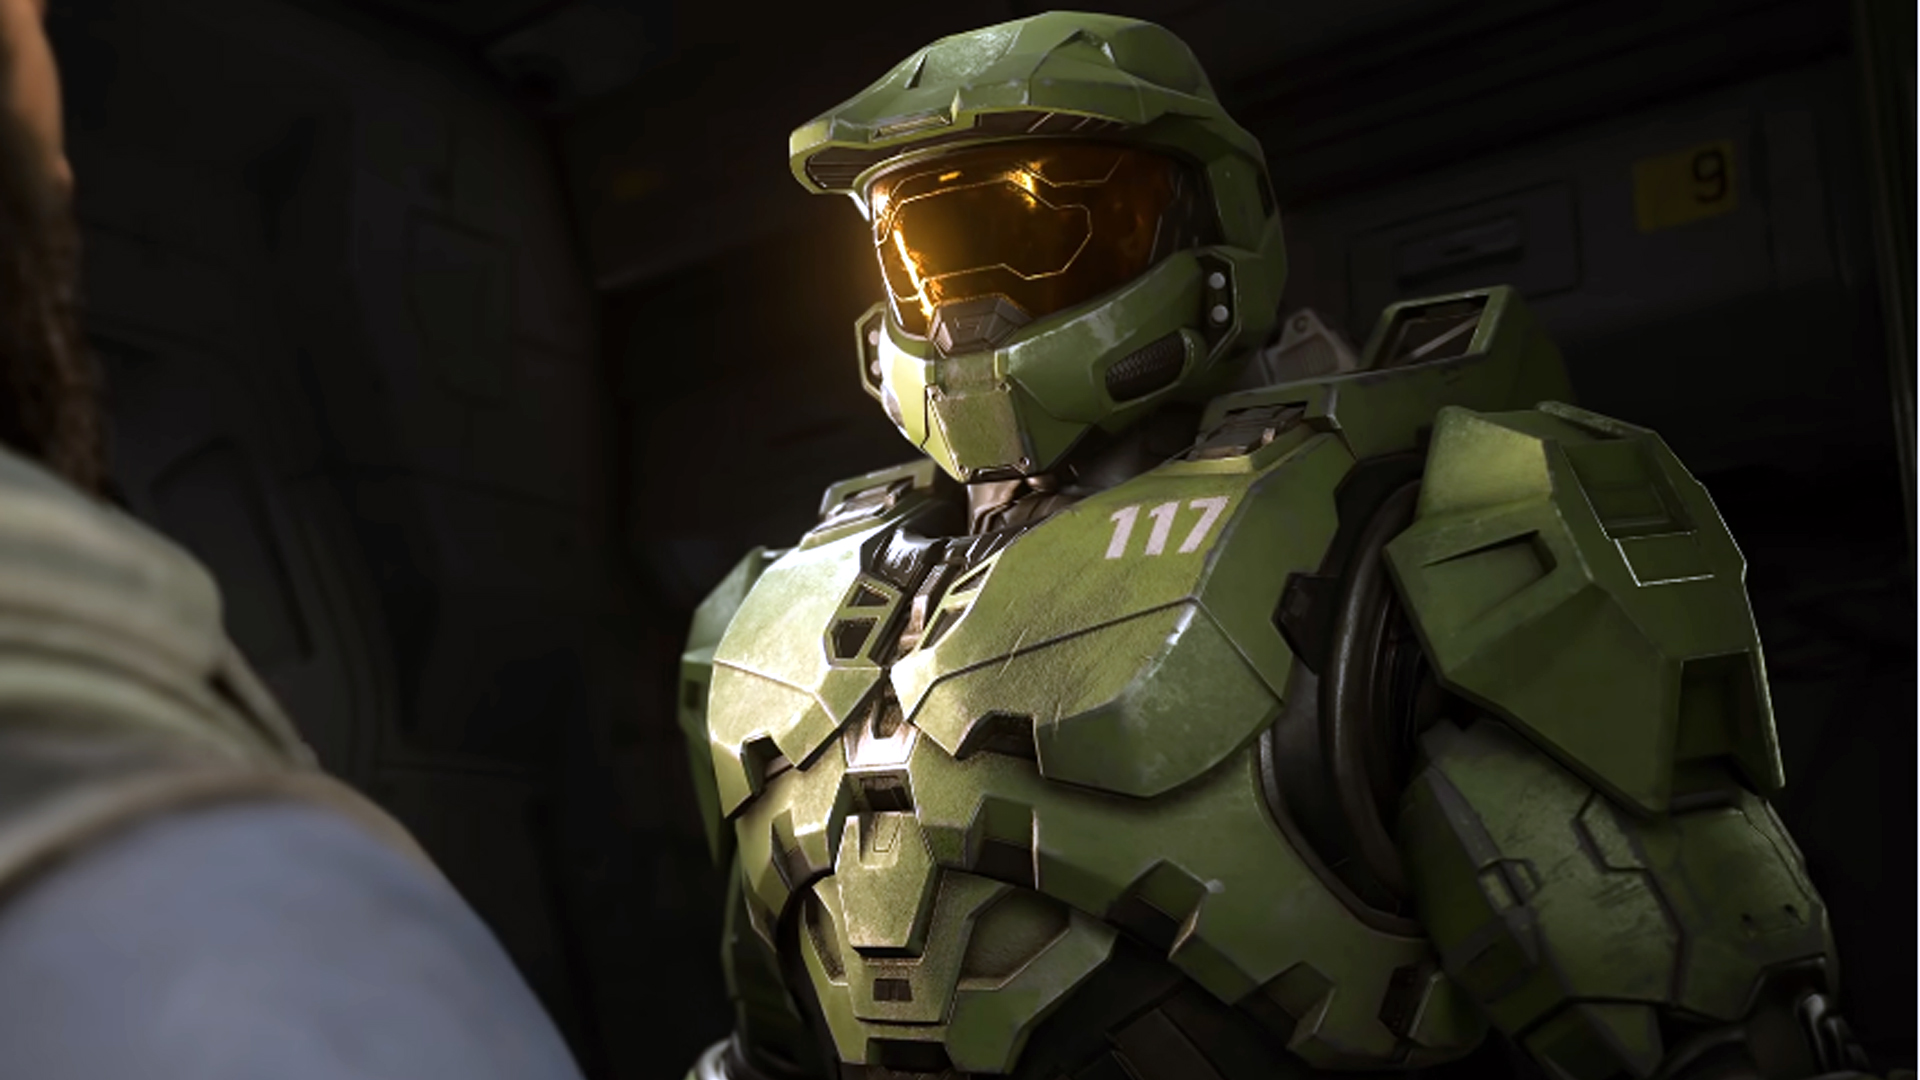 Halo Infinite's campaign wasn't at Gamescom because 343 is busy bug squashing